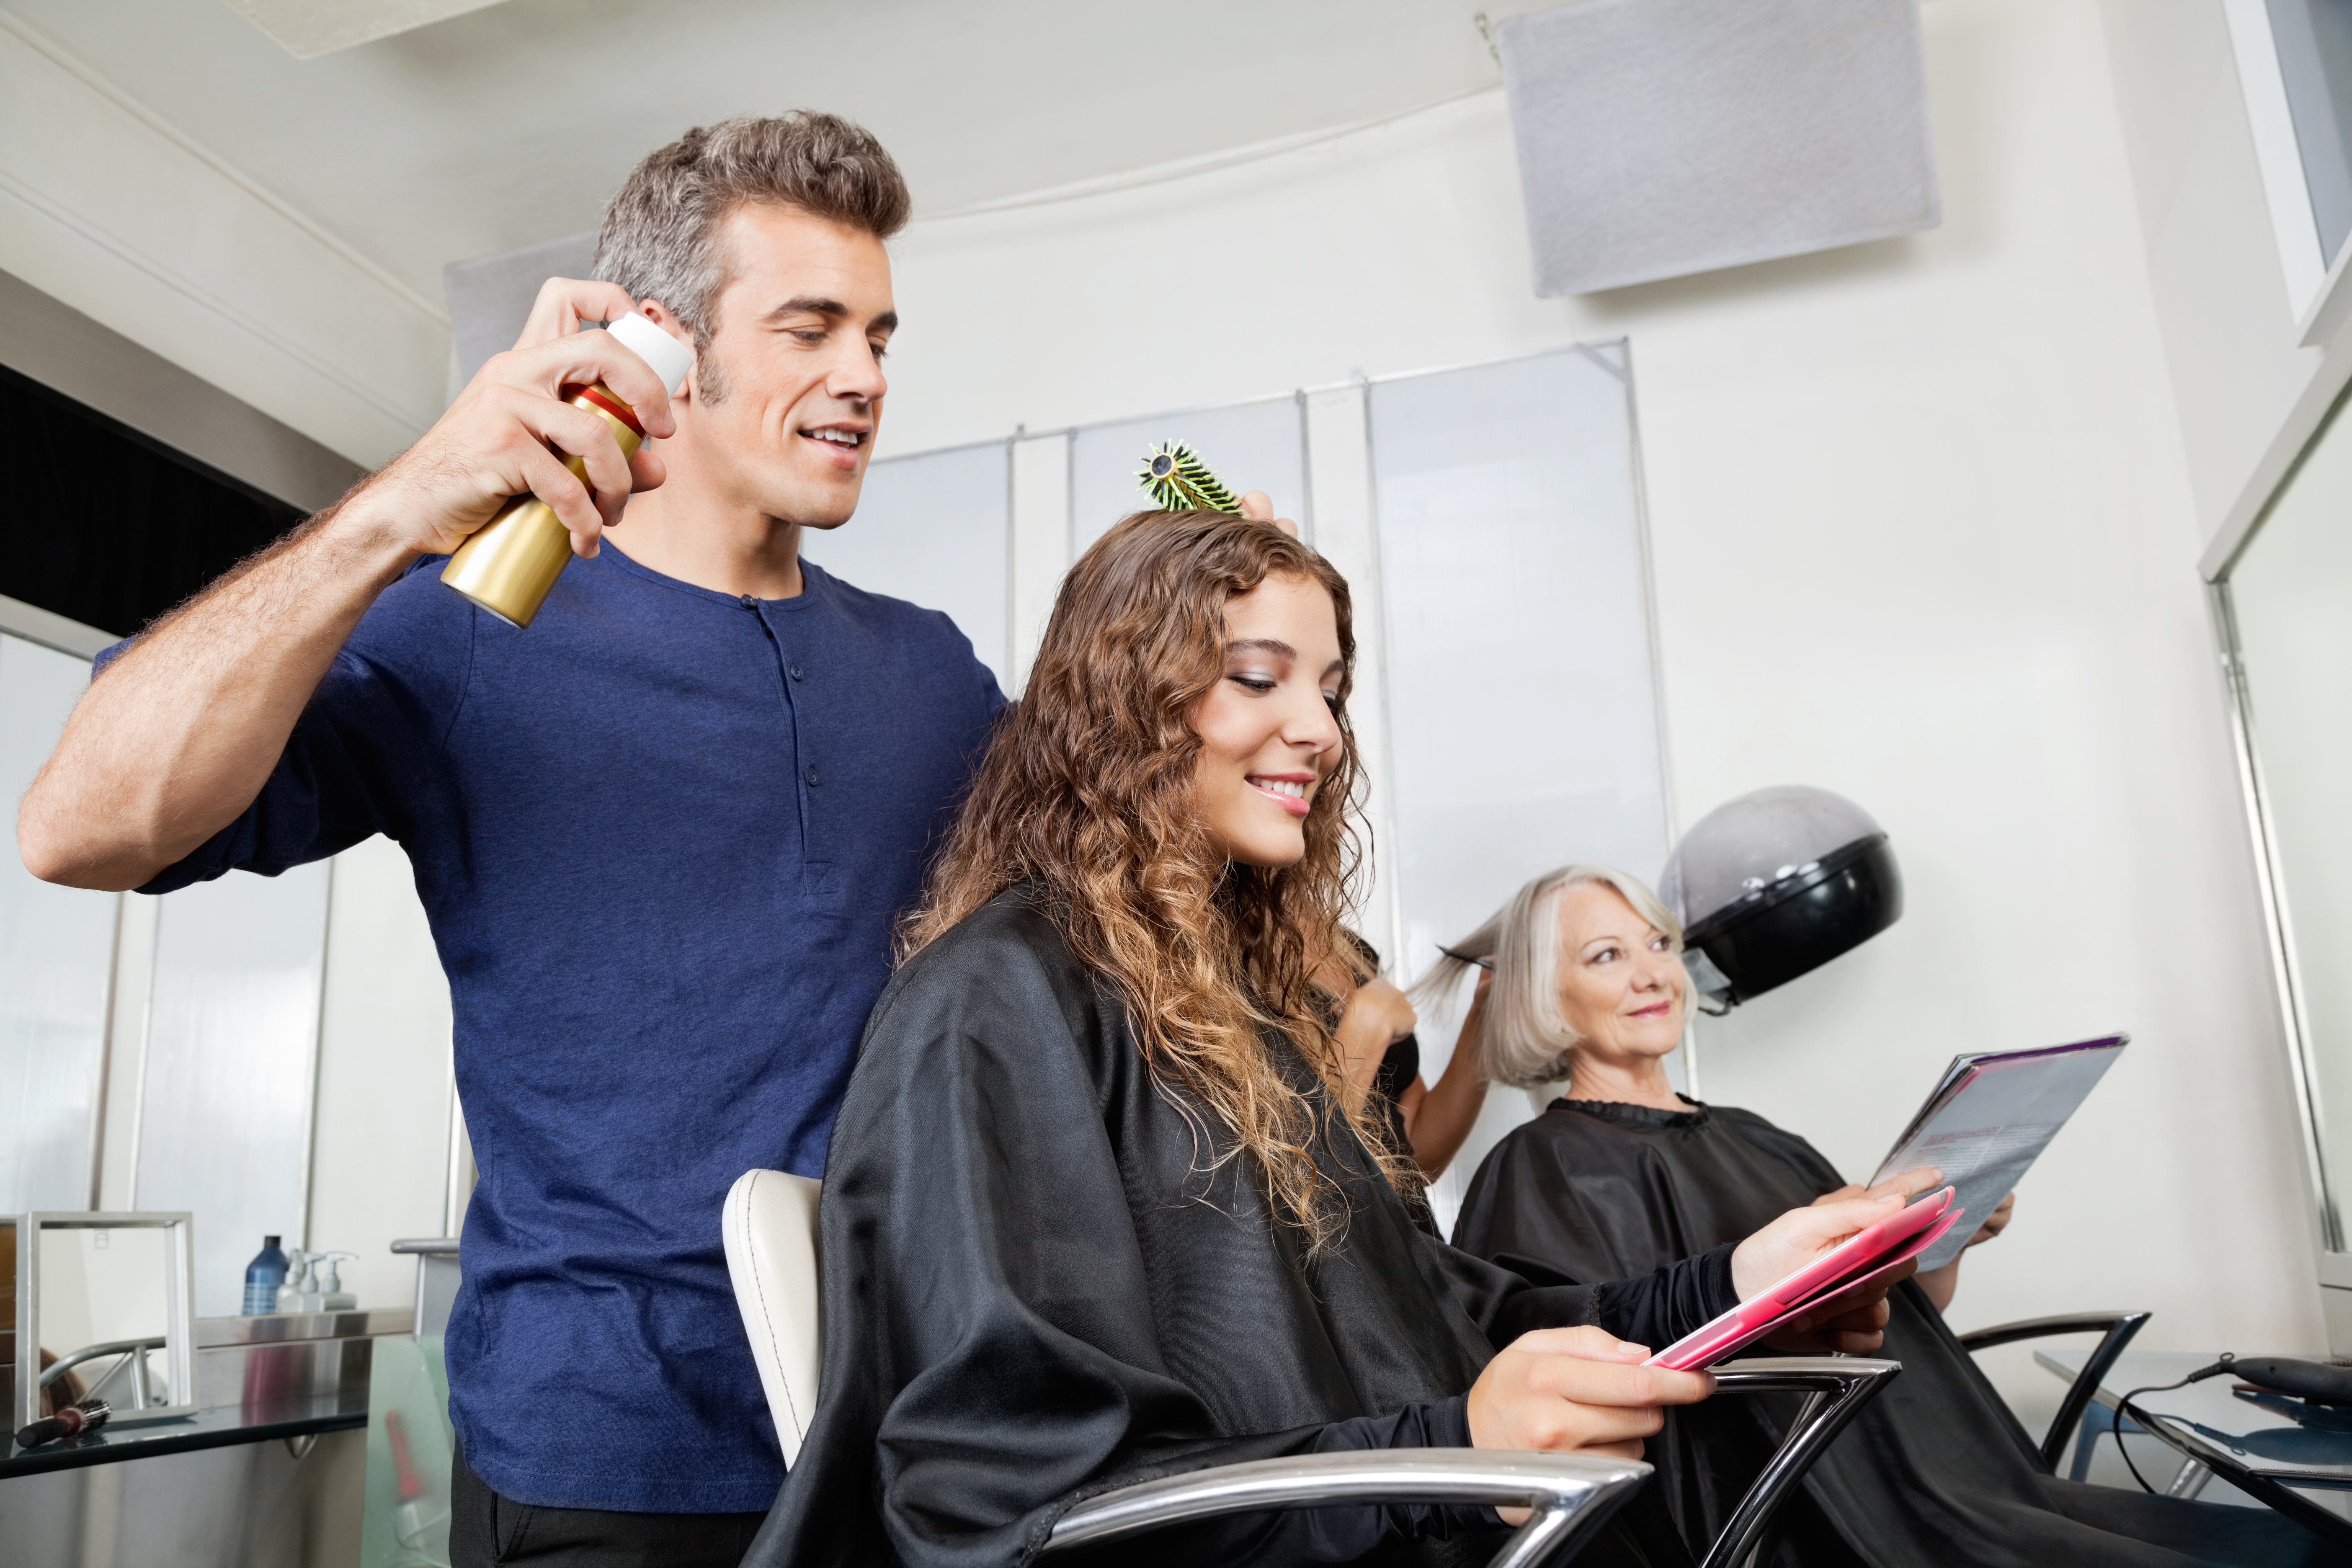 Explaining the need for insurance in a salon